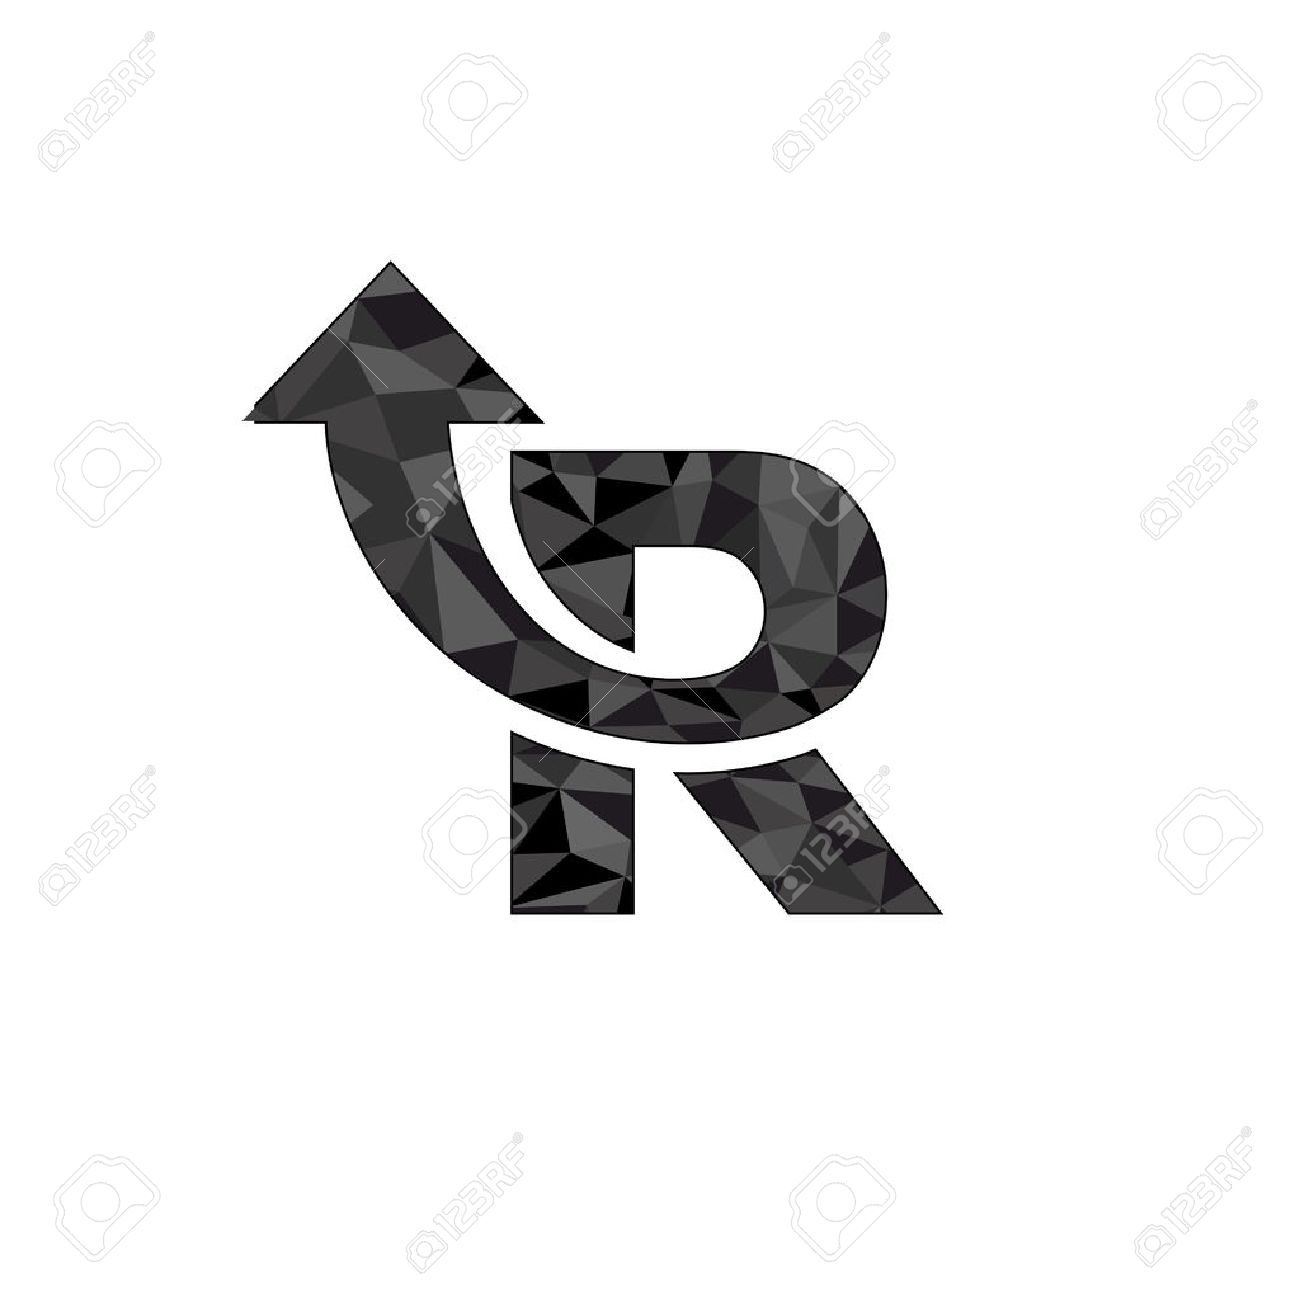 Letter r logo design with arrow symbol royalty free cliparts letter r logo design with arrow symbol stock vector 39673042 thecheapjerseys Images